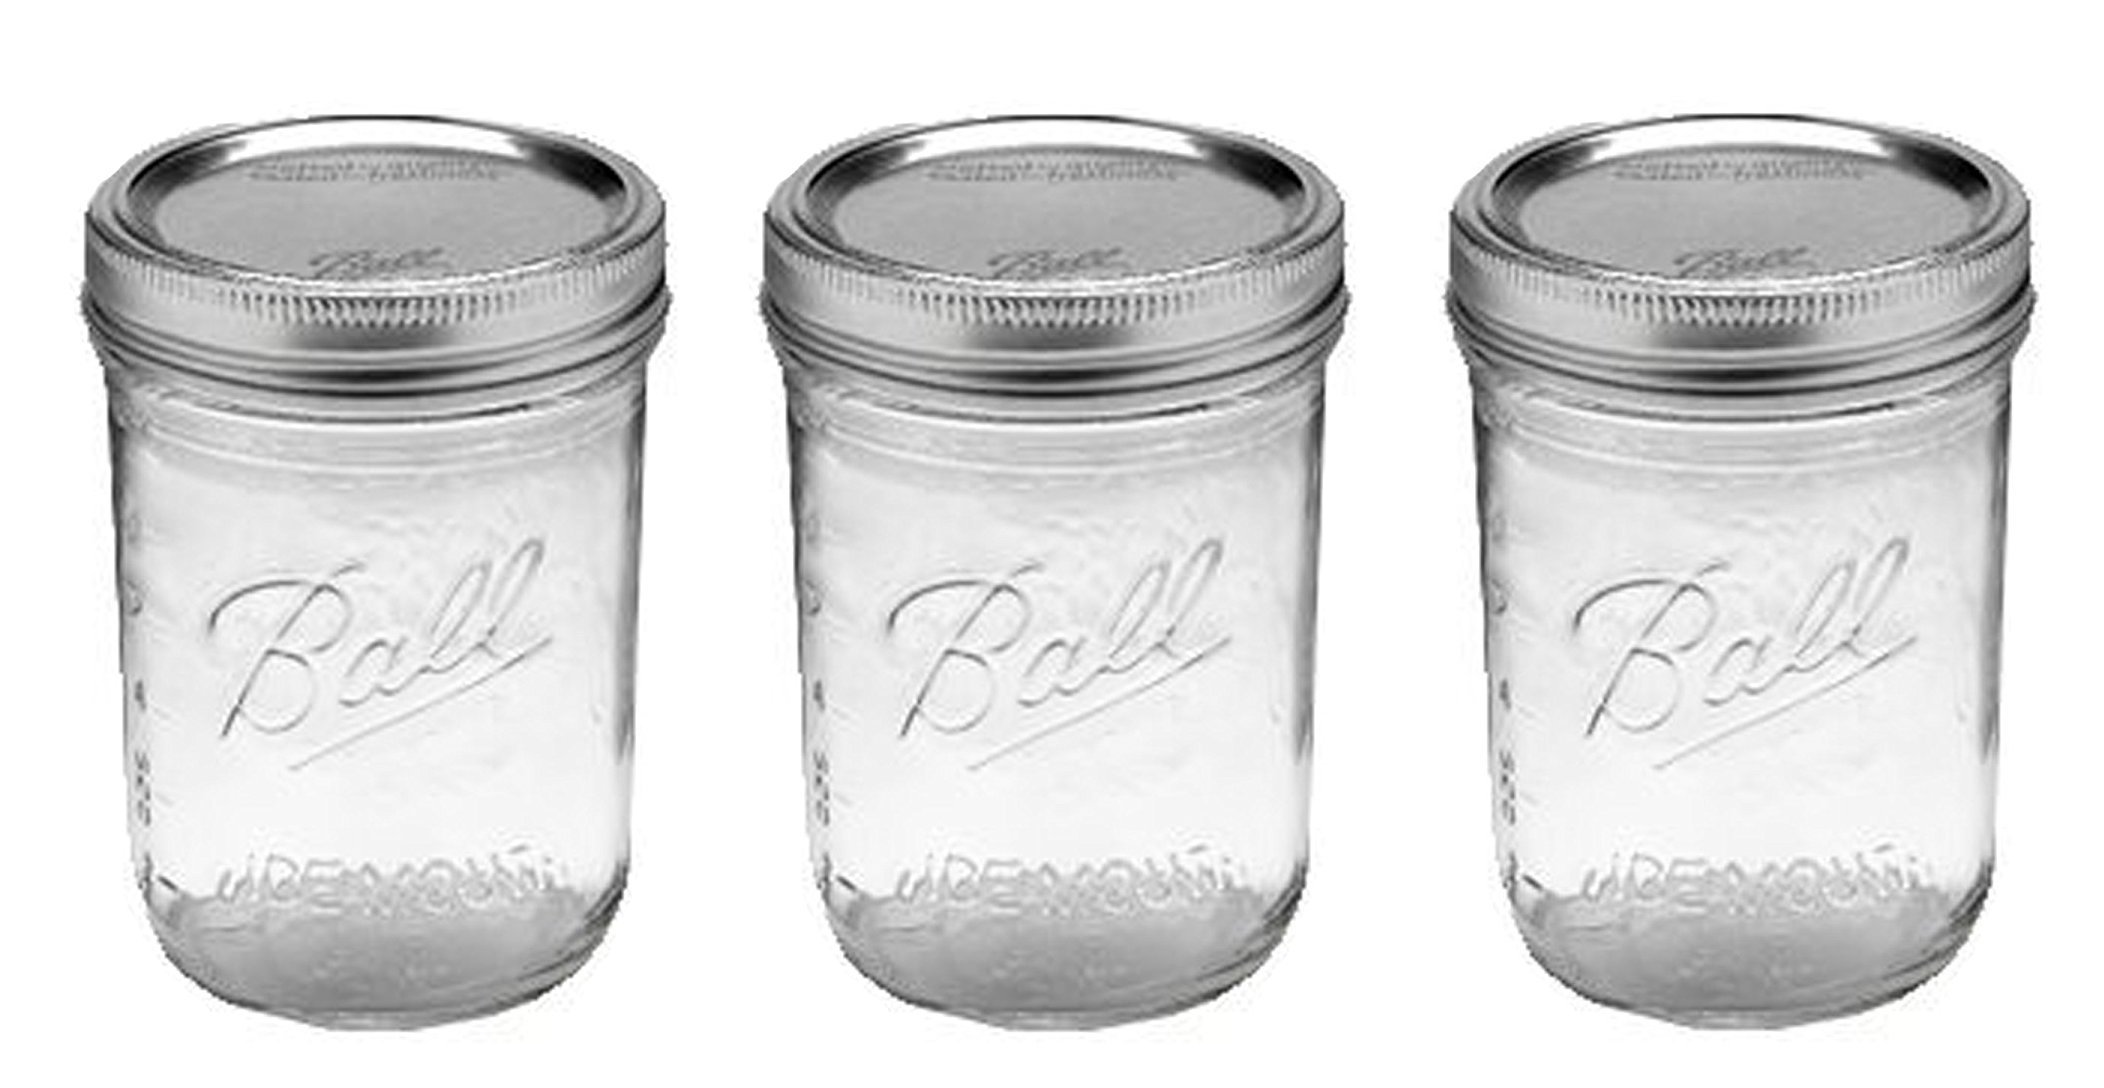 Ball Jar with Lid and Band - (Clear, Wide Mouth Pint - 16 oz.) Pack Of 3